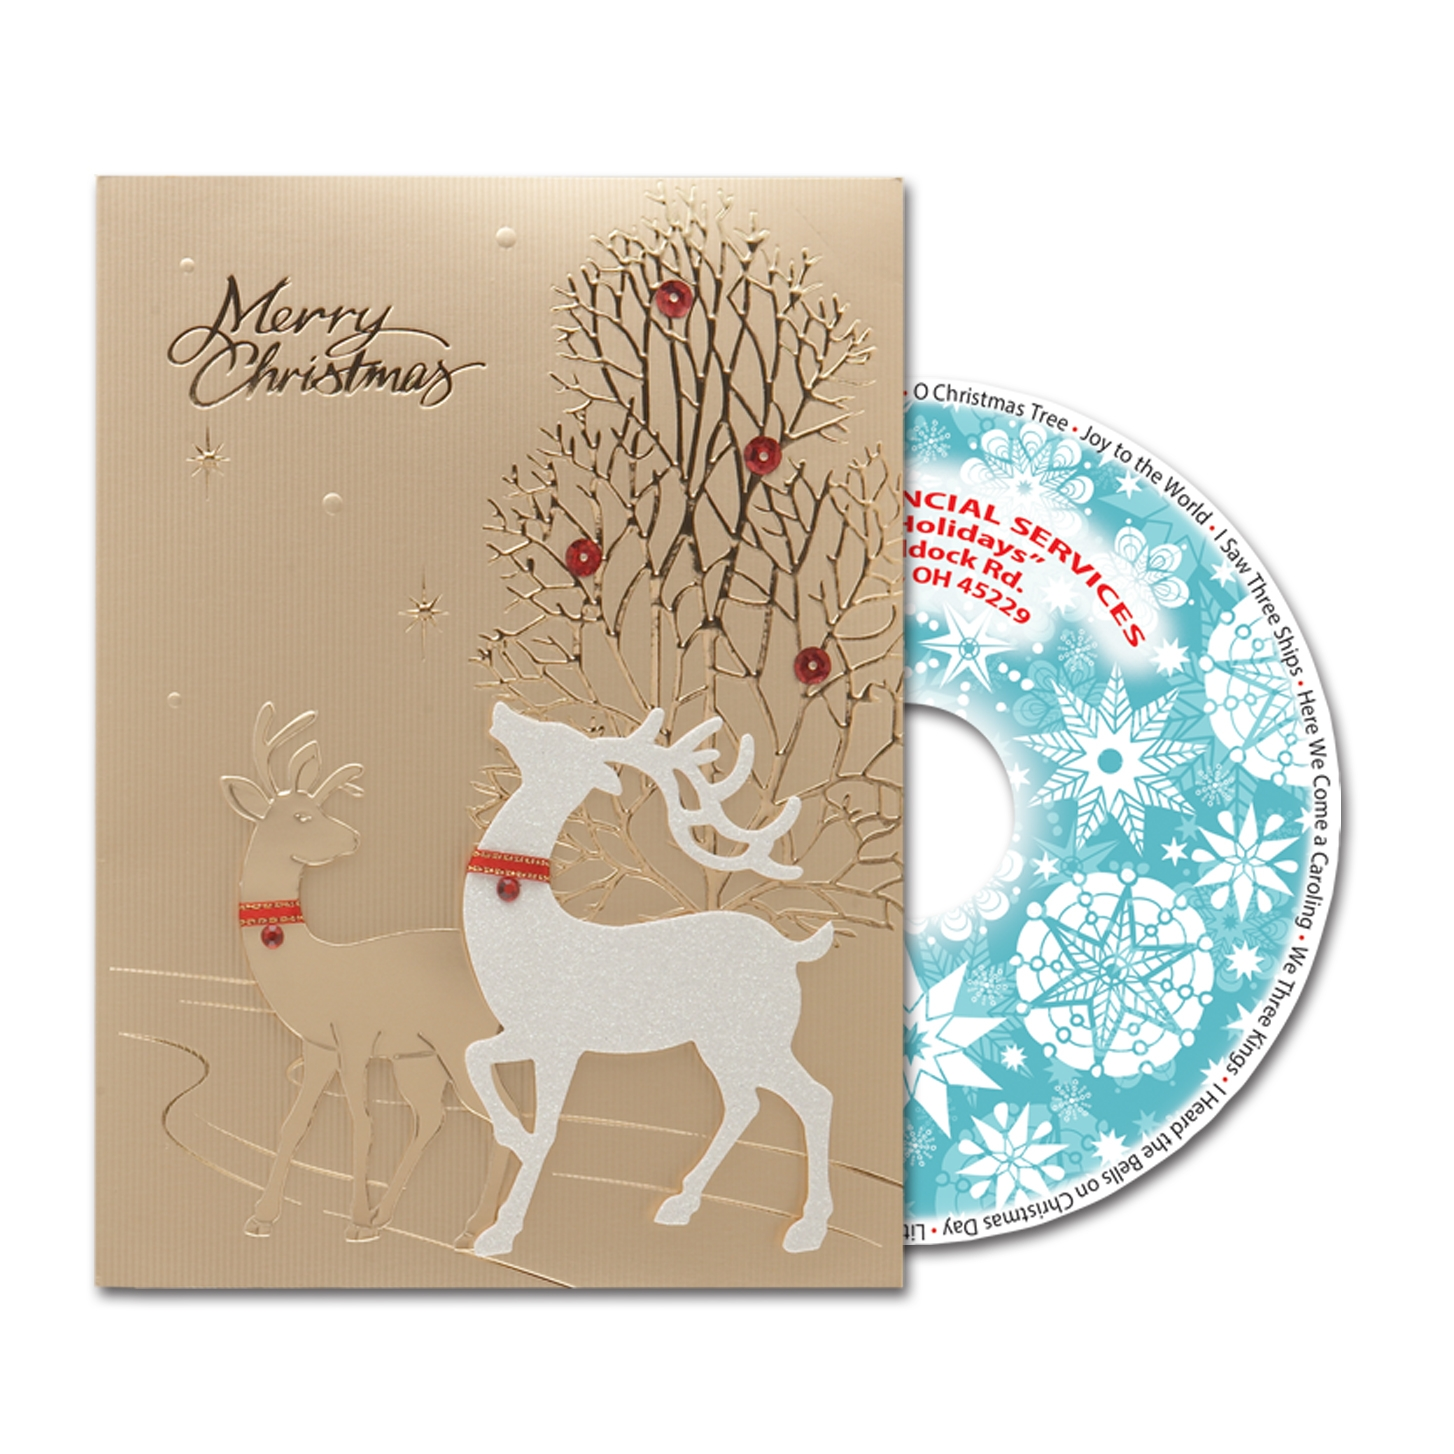 Holiday Card with Personalized CD